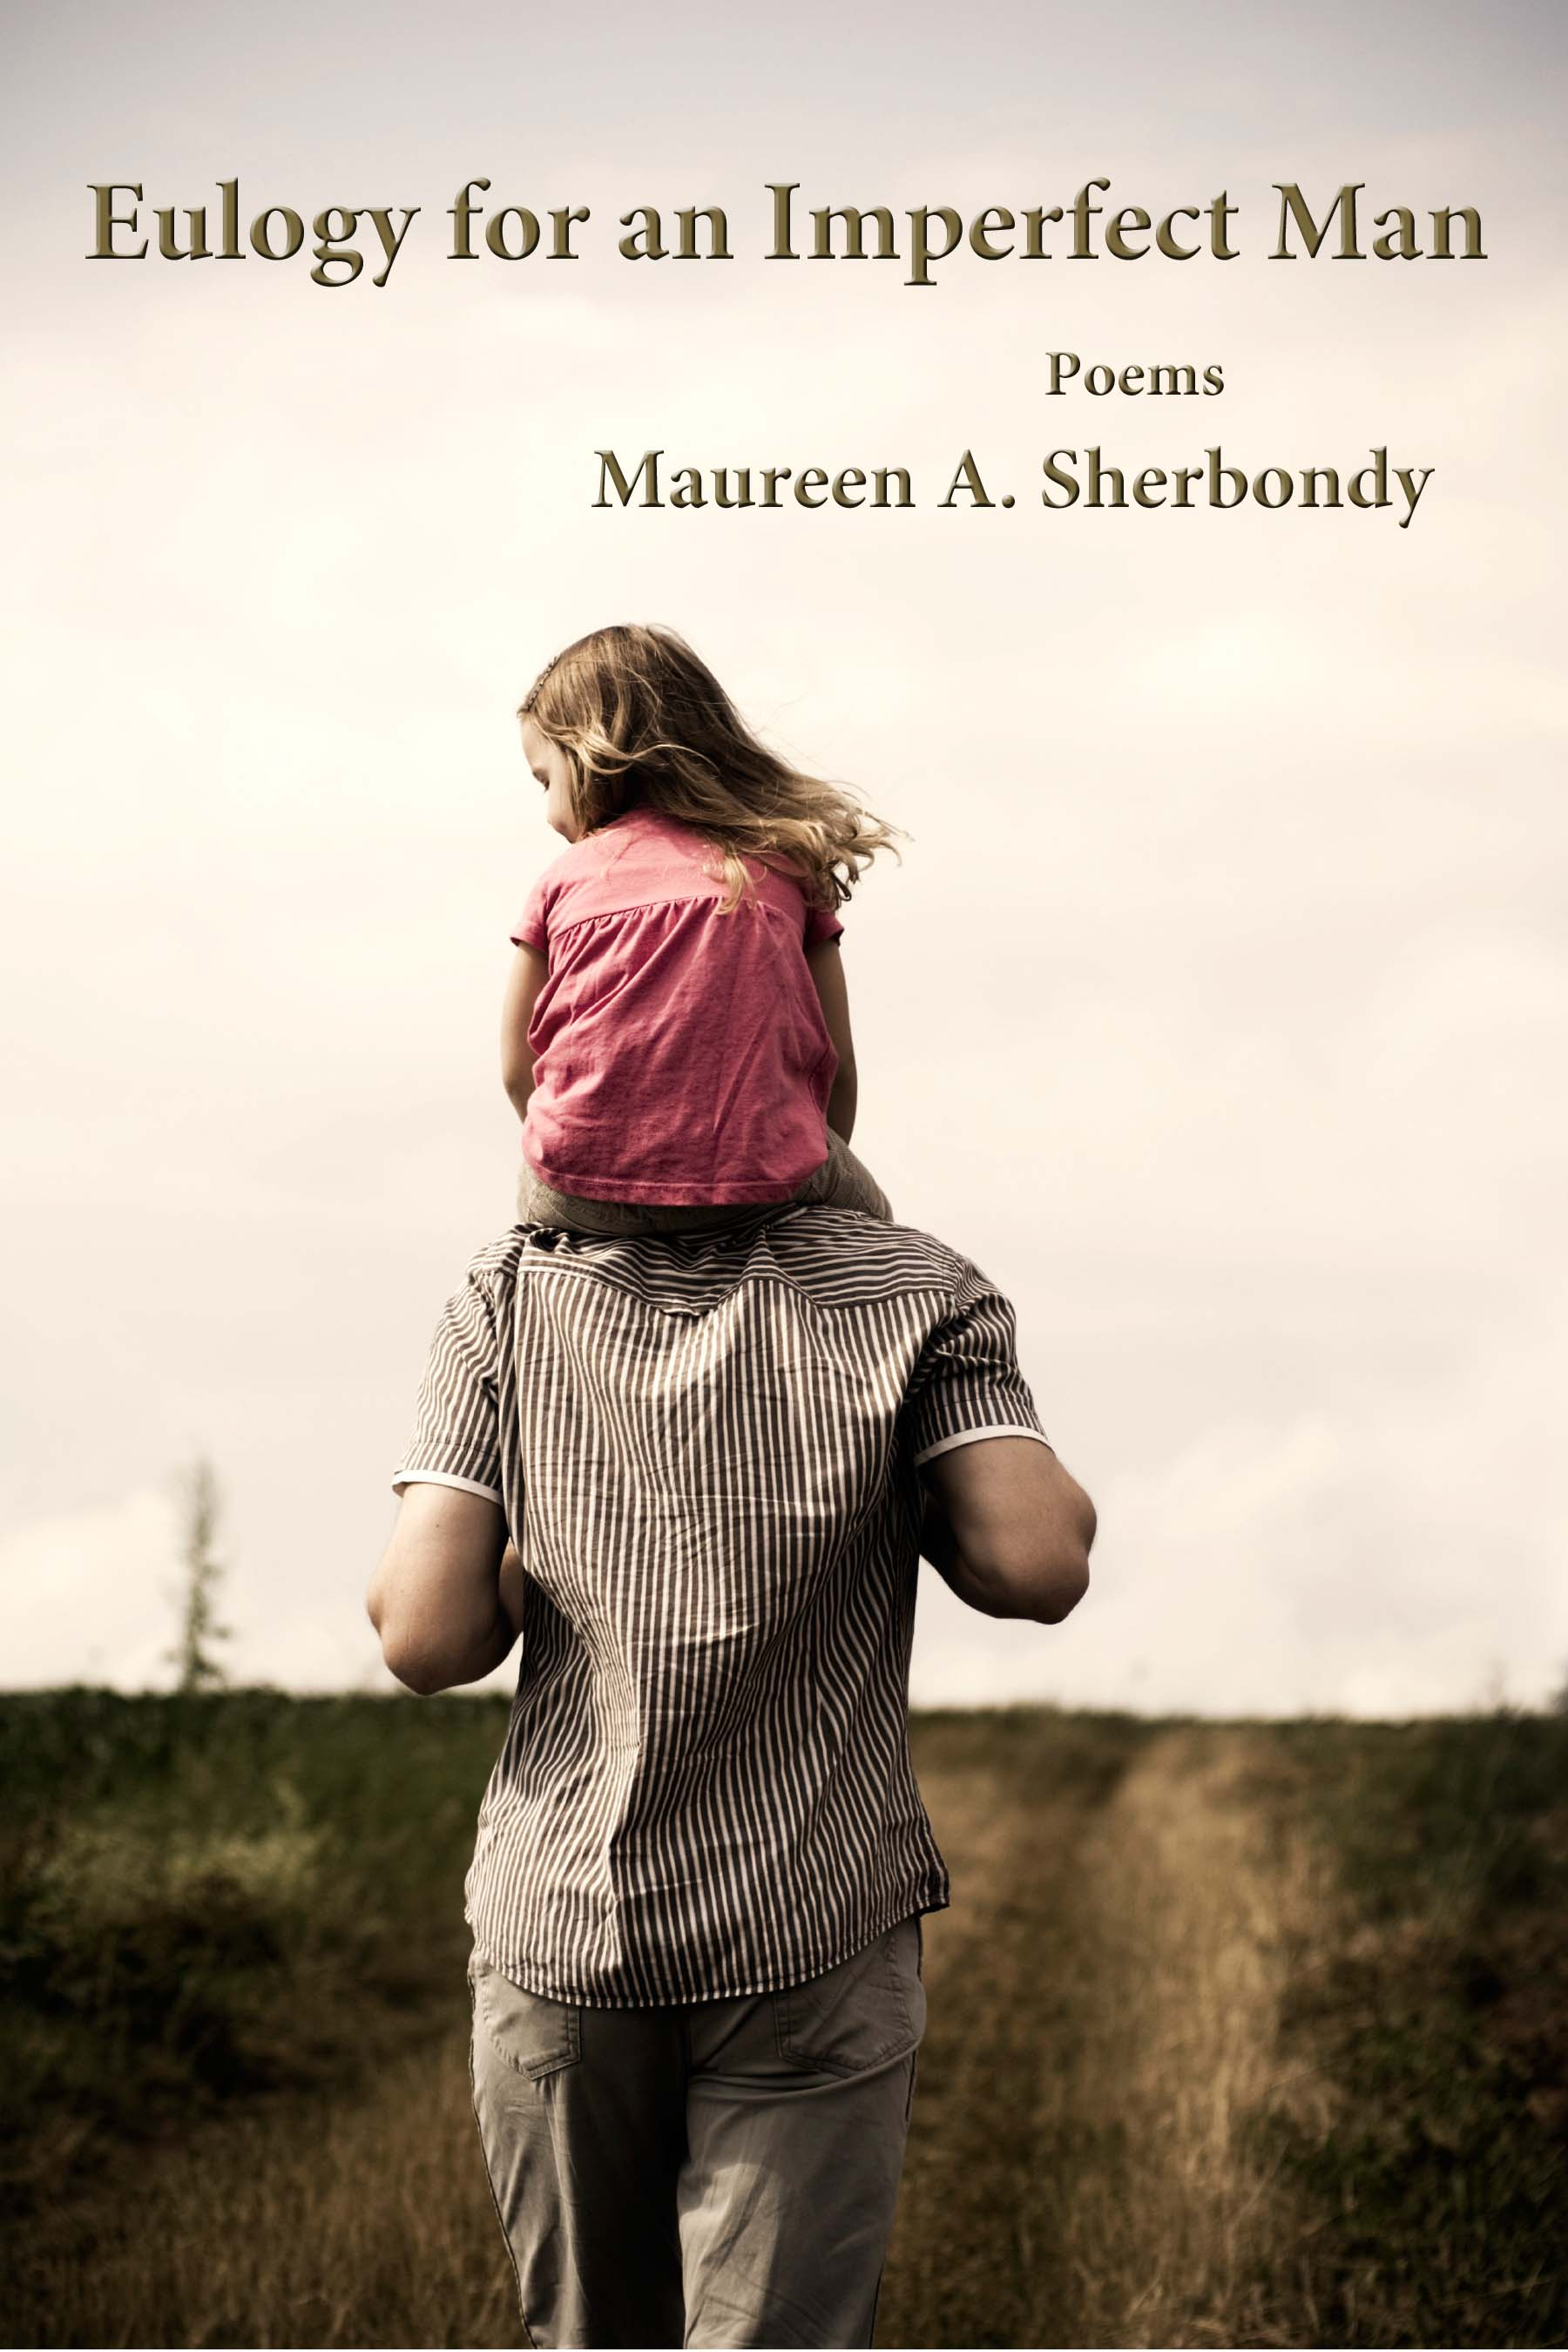 Eulogy for an Imperfect Man by Maureen A. Sherbondy